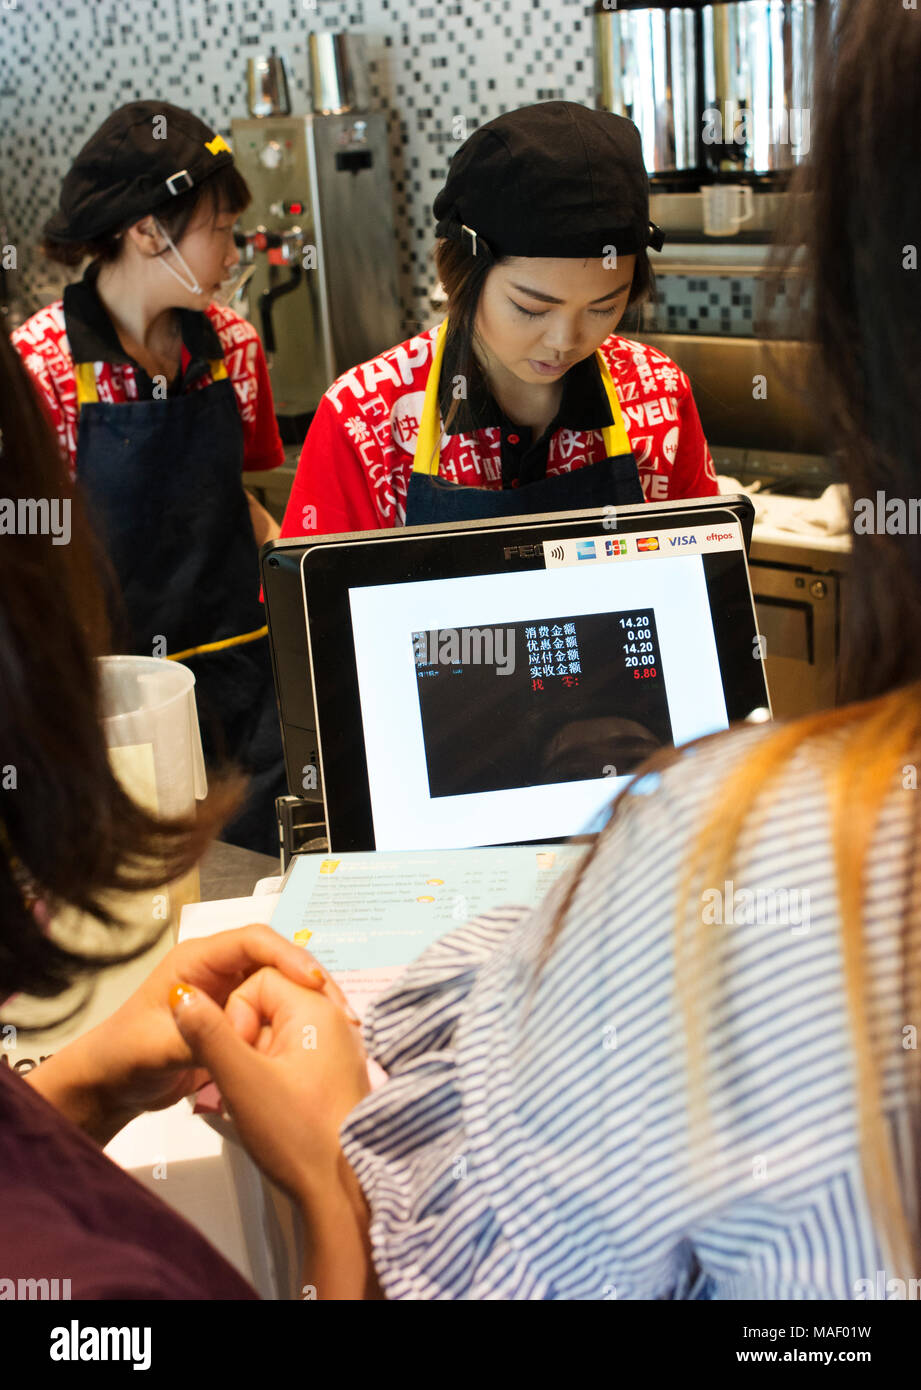 Employee at a fast food outlet's cash register in Melbourne's CBD, which has its display entirely in Chinese. - Stock Image